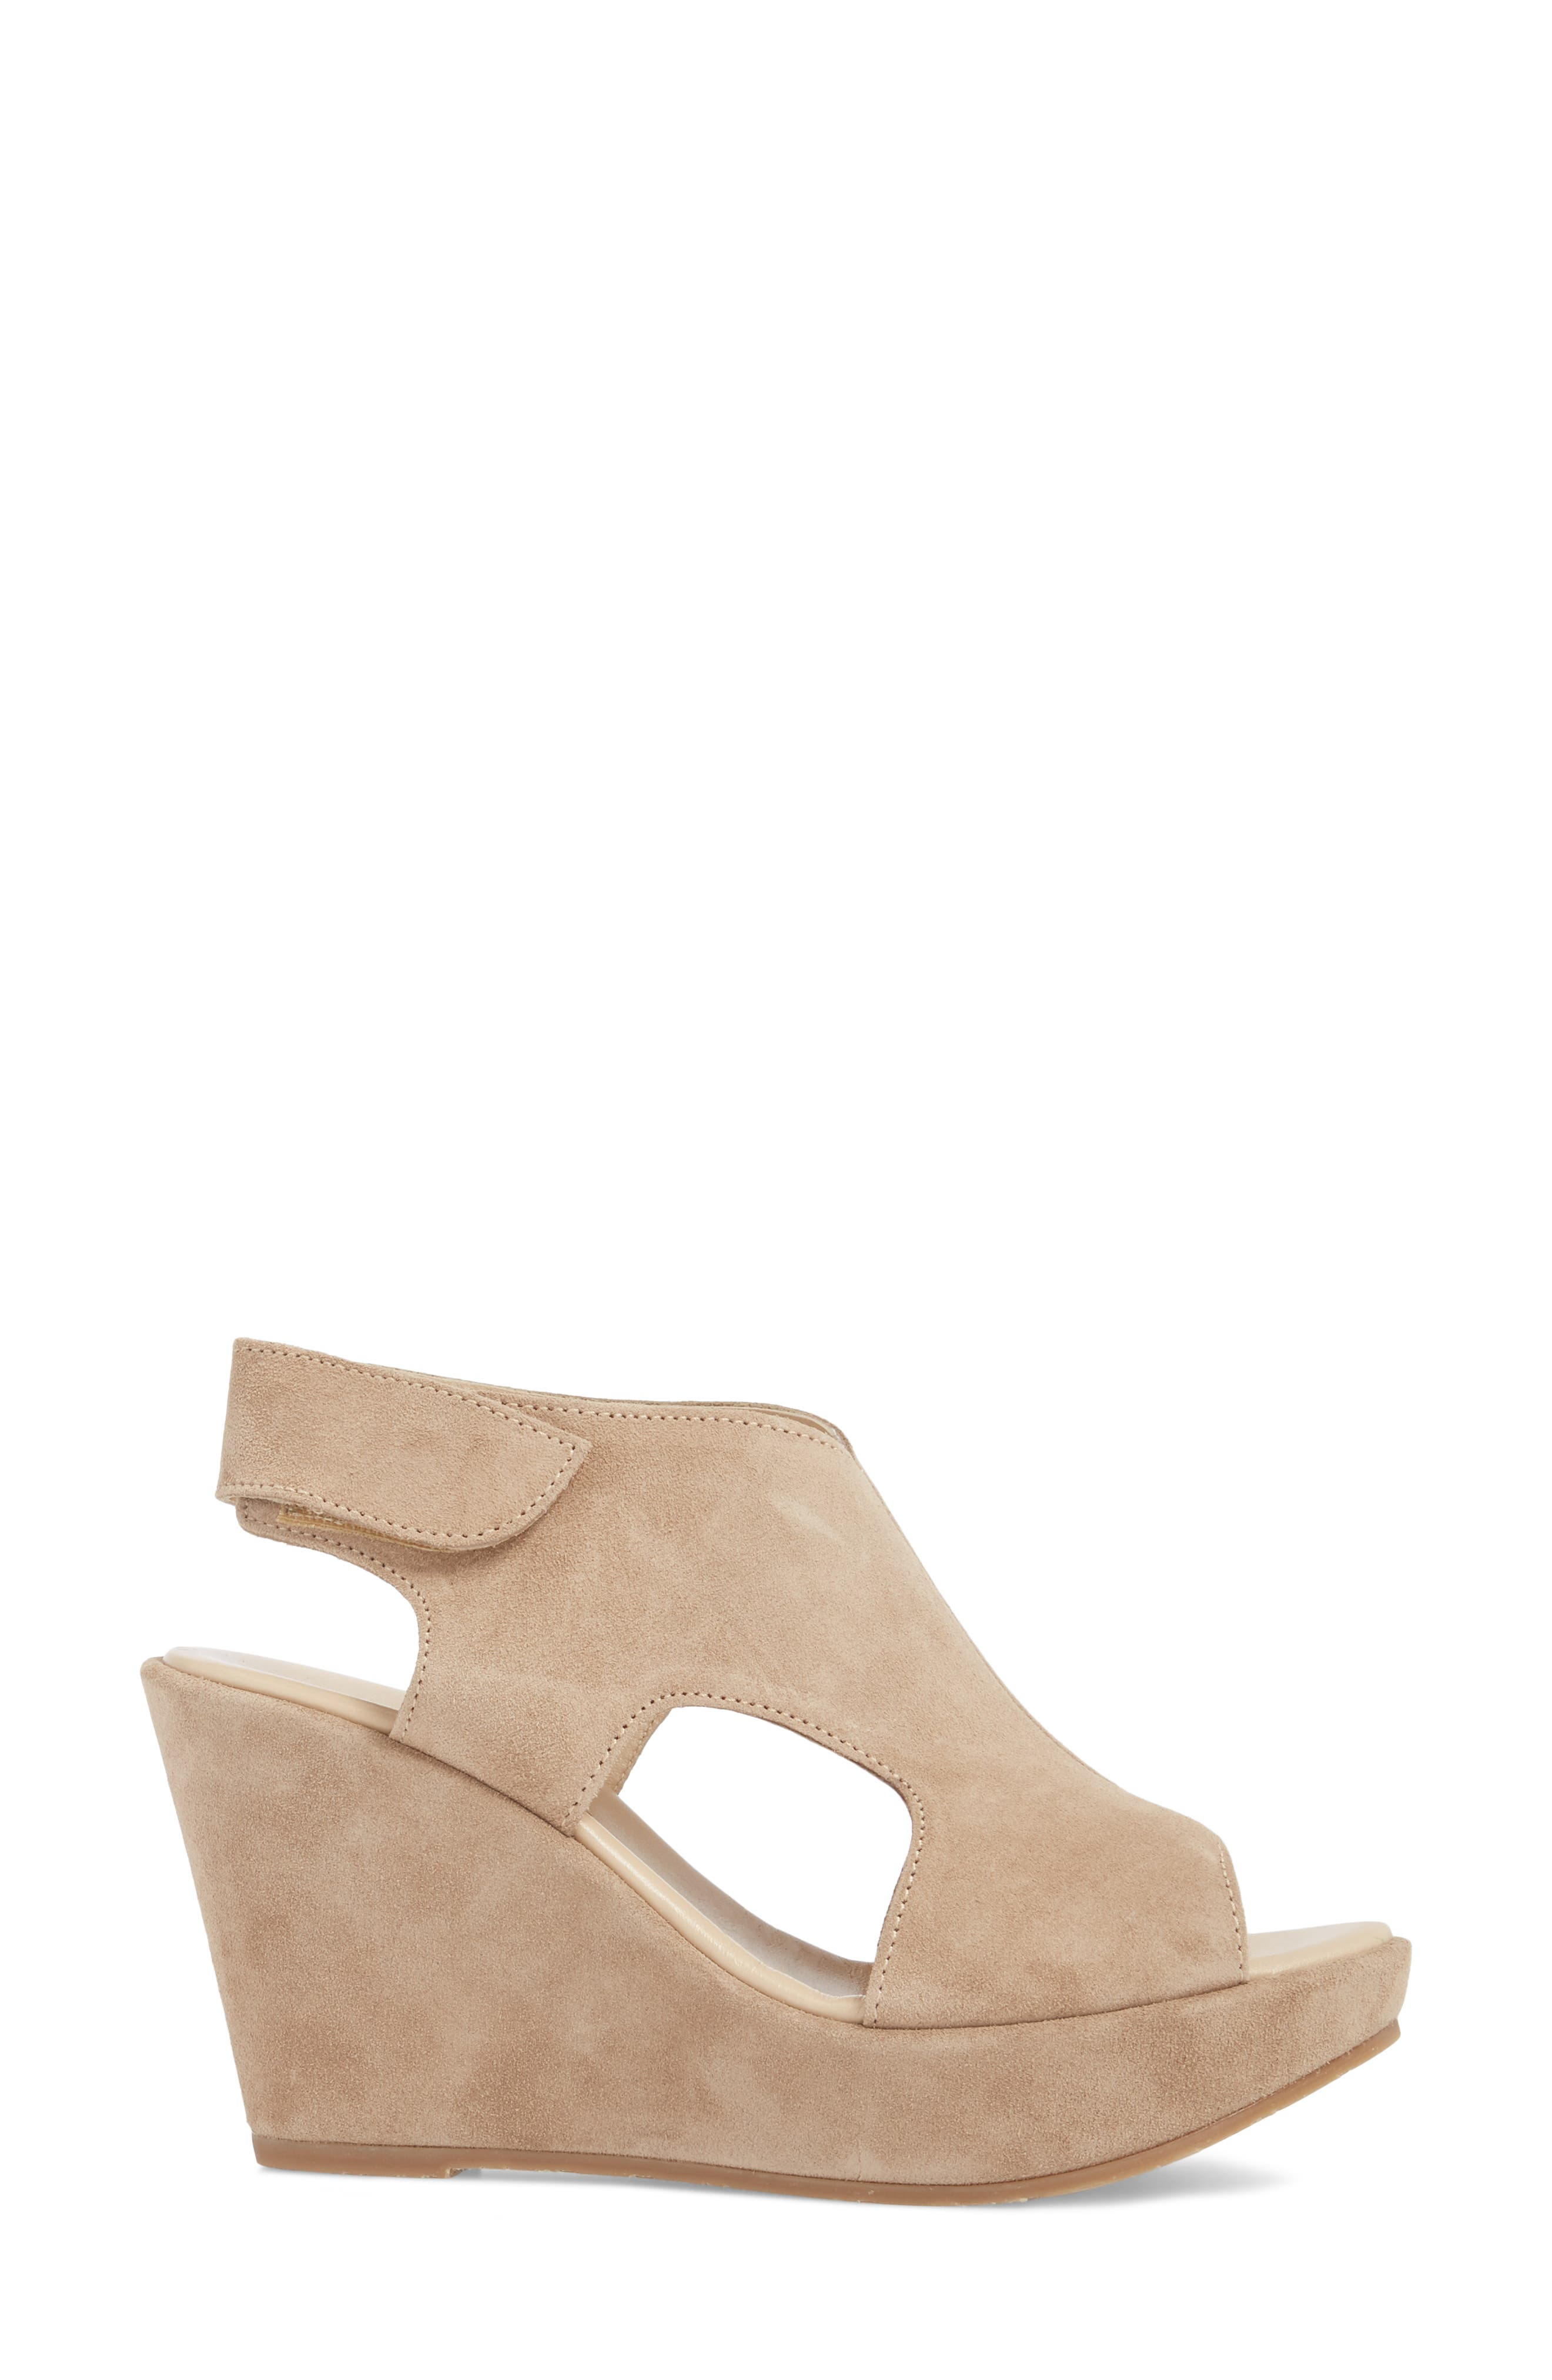 Reed Wedge Sandal,                             Alternate thumbnail 6, color,